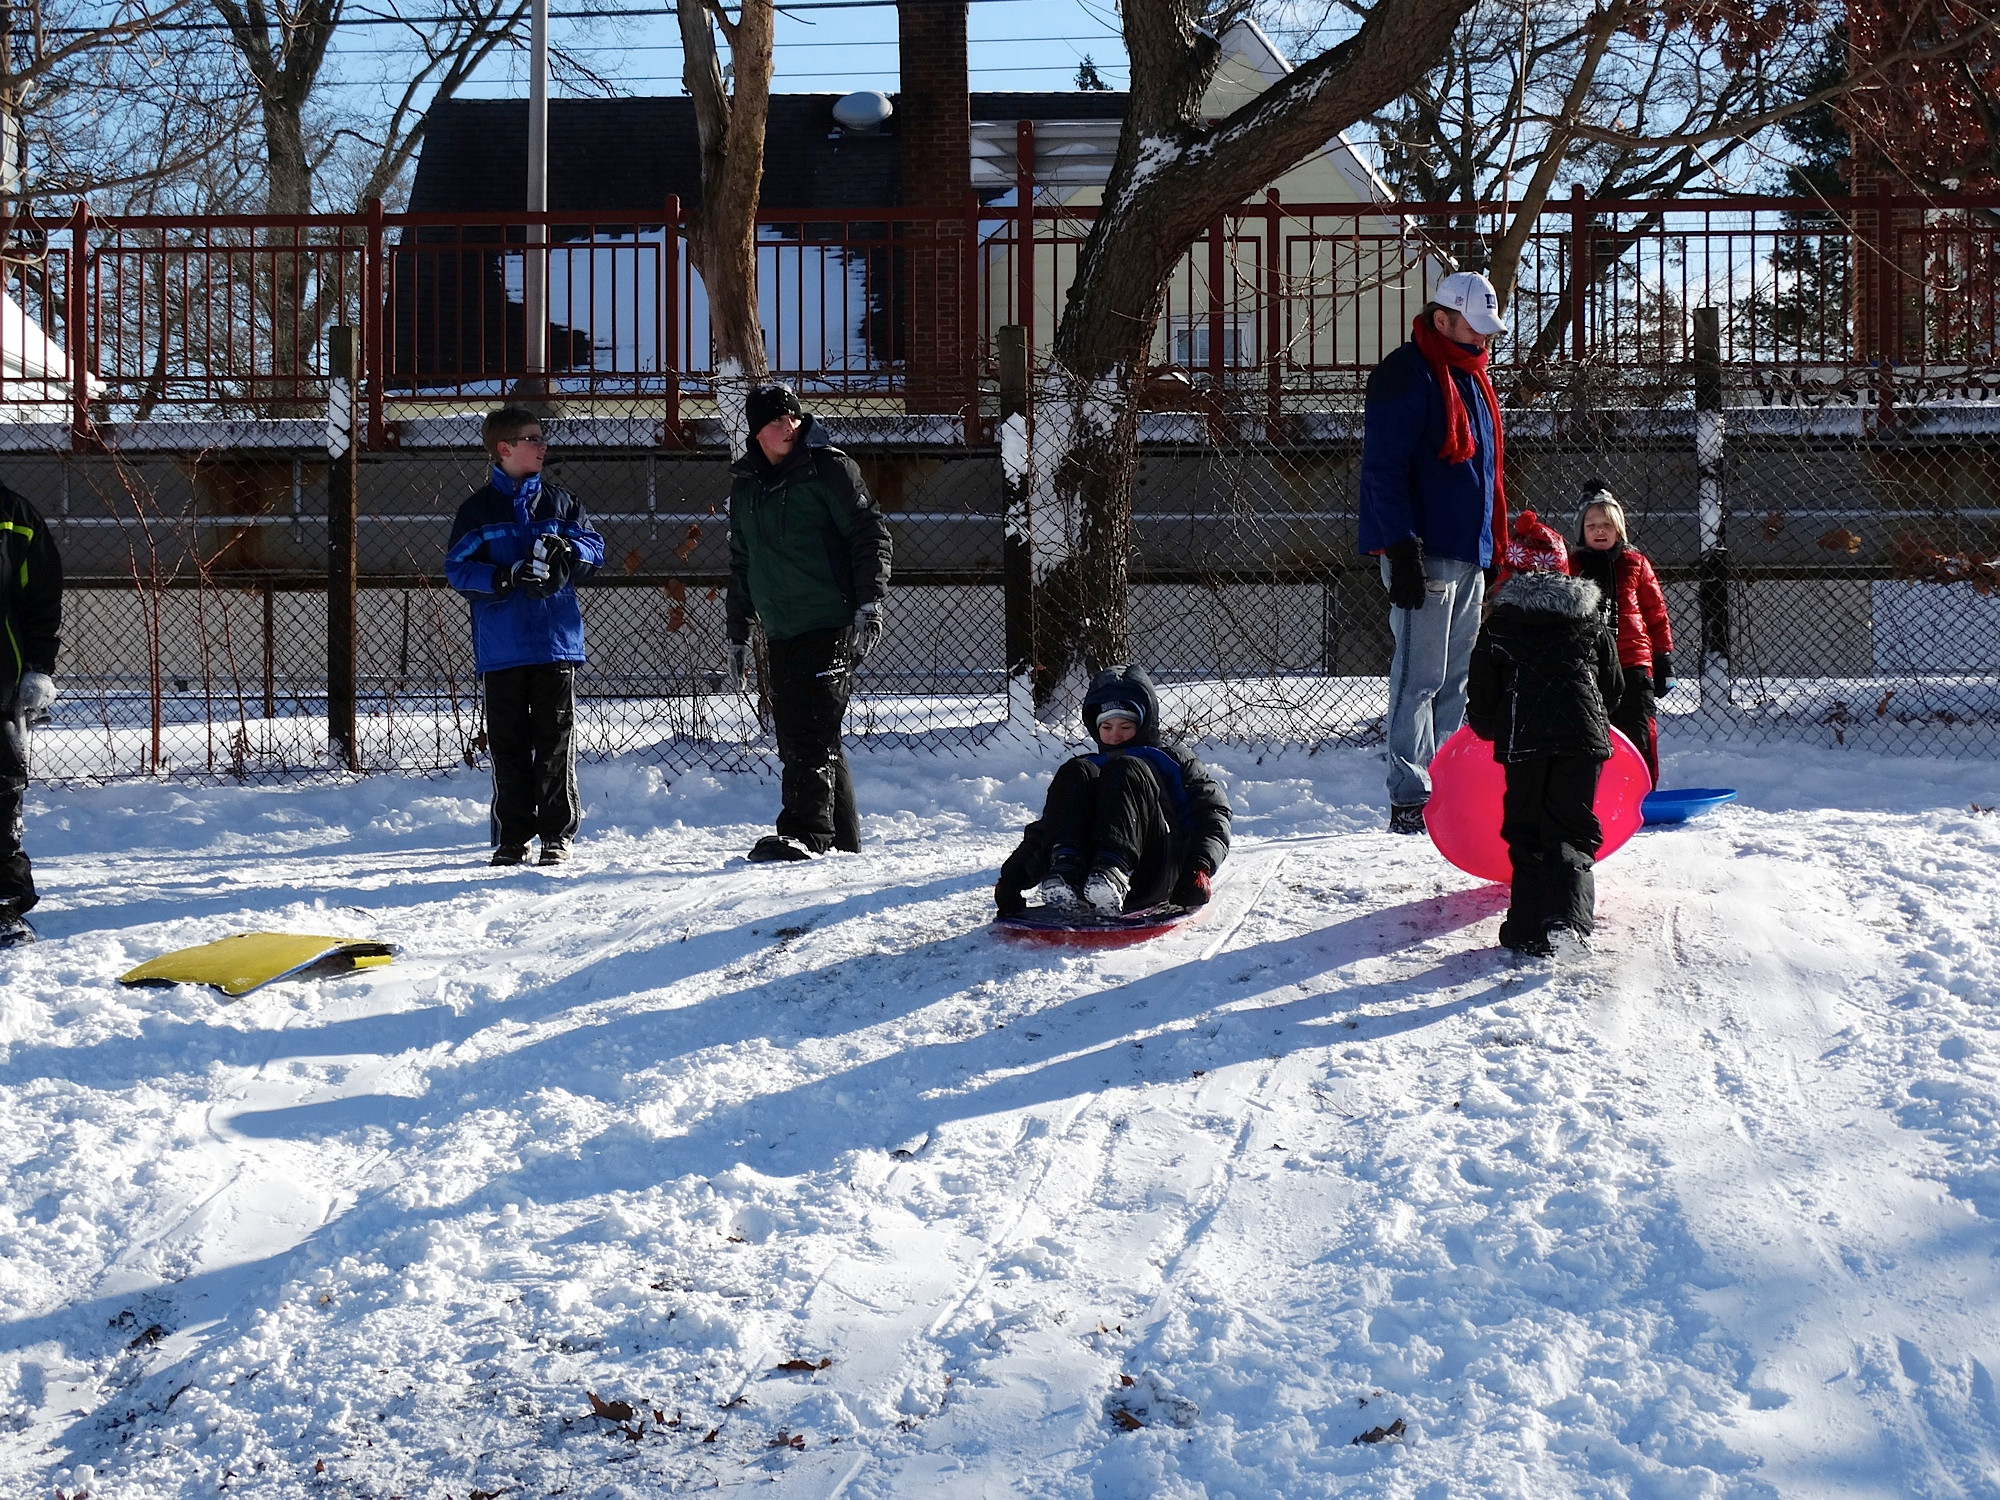 Children from Valley Stream and Malverne could be found sledding by the Westwood train station.